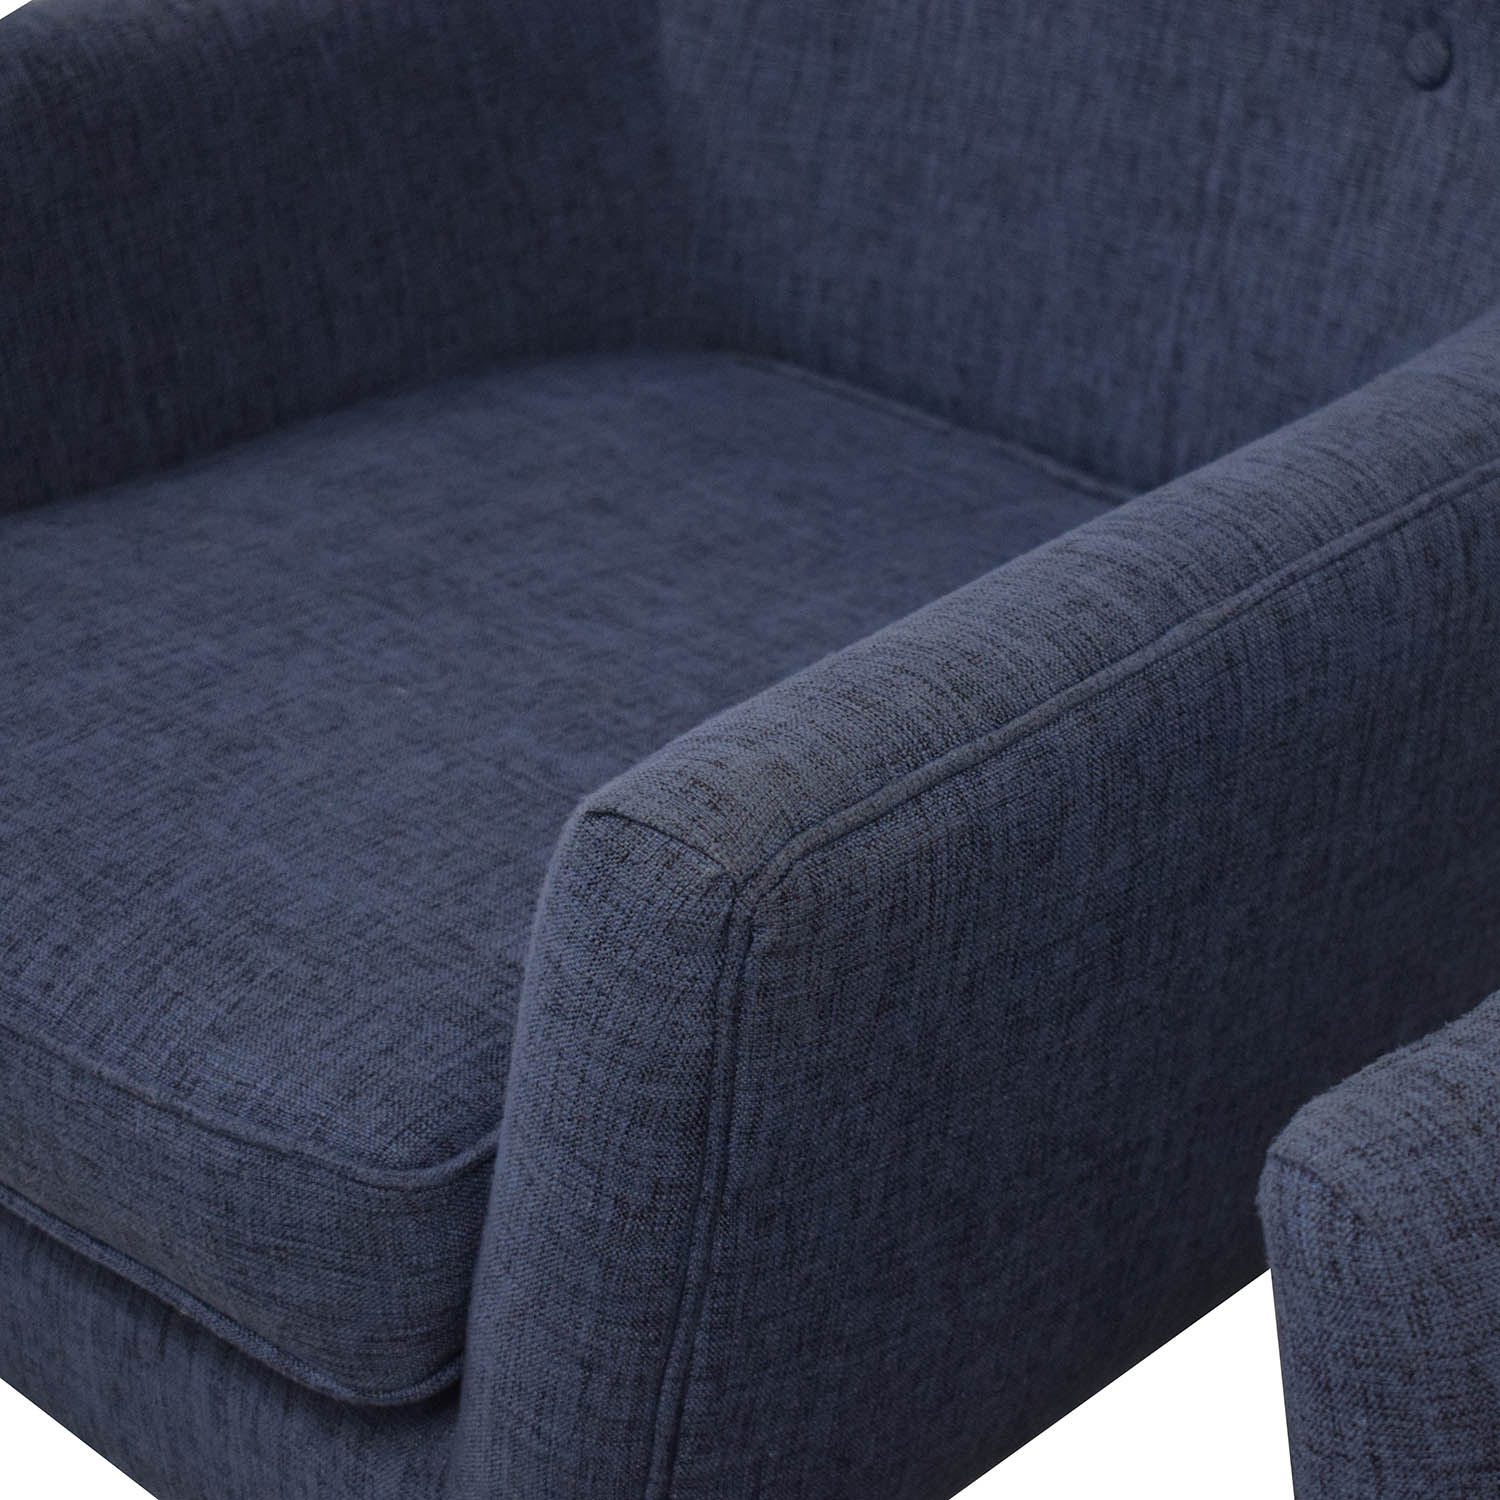 Tov TOV Furniture Clyde Linen Chairs dimensions